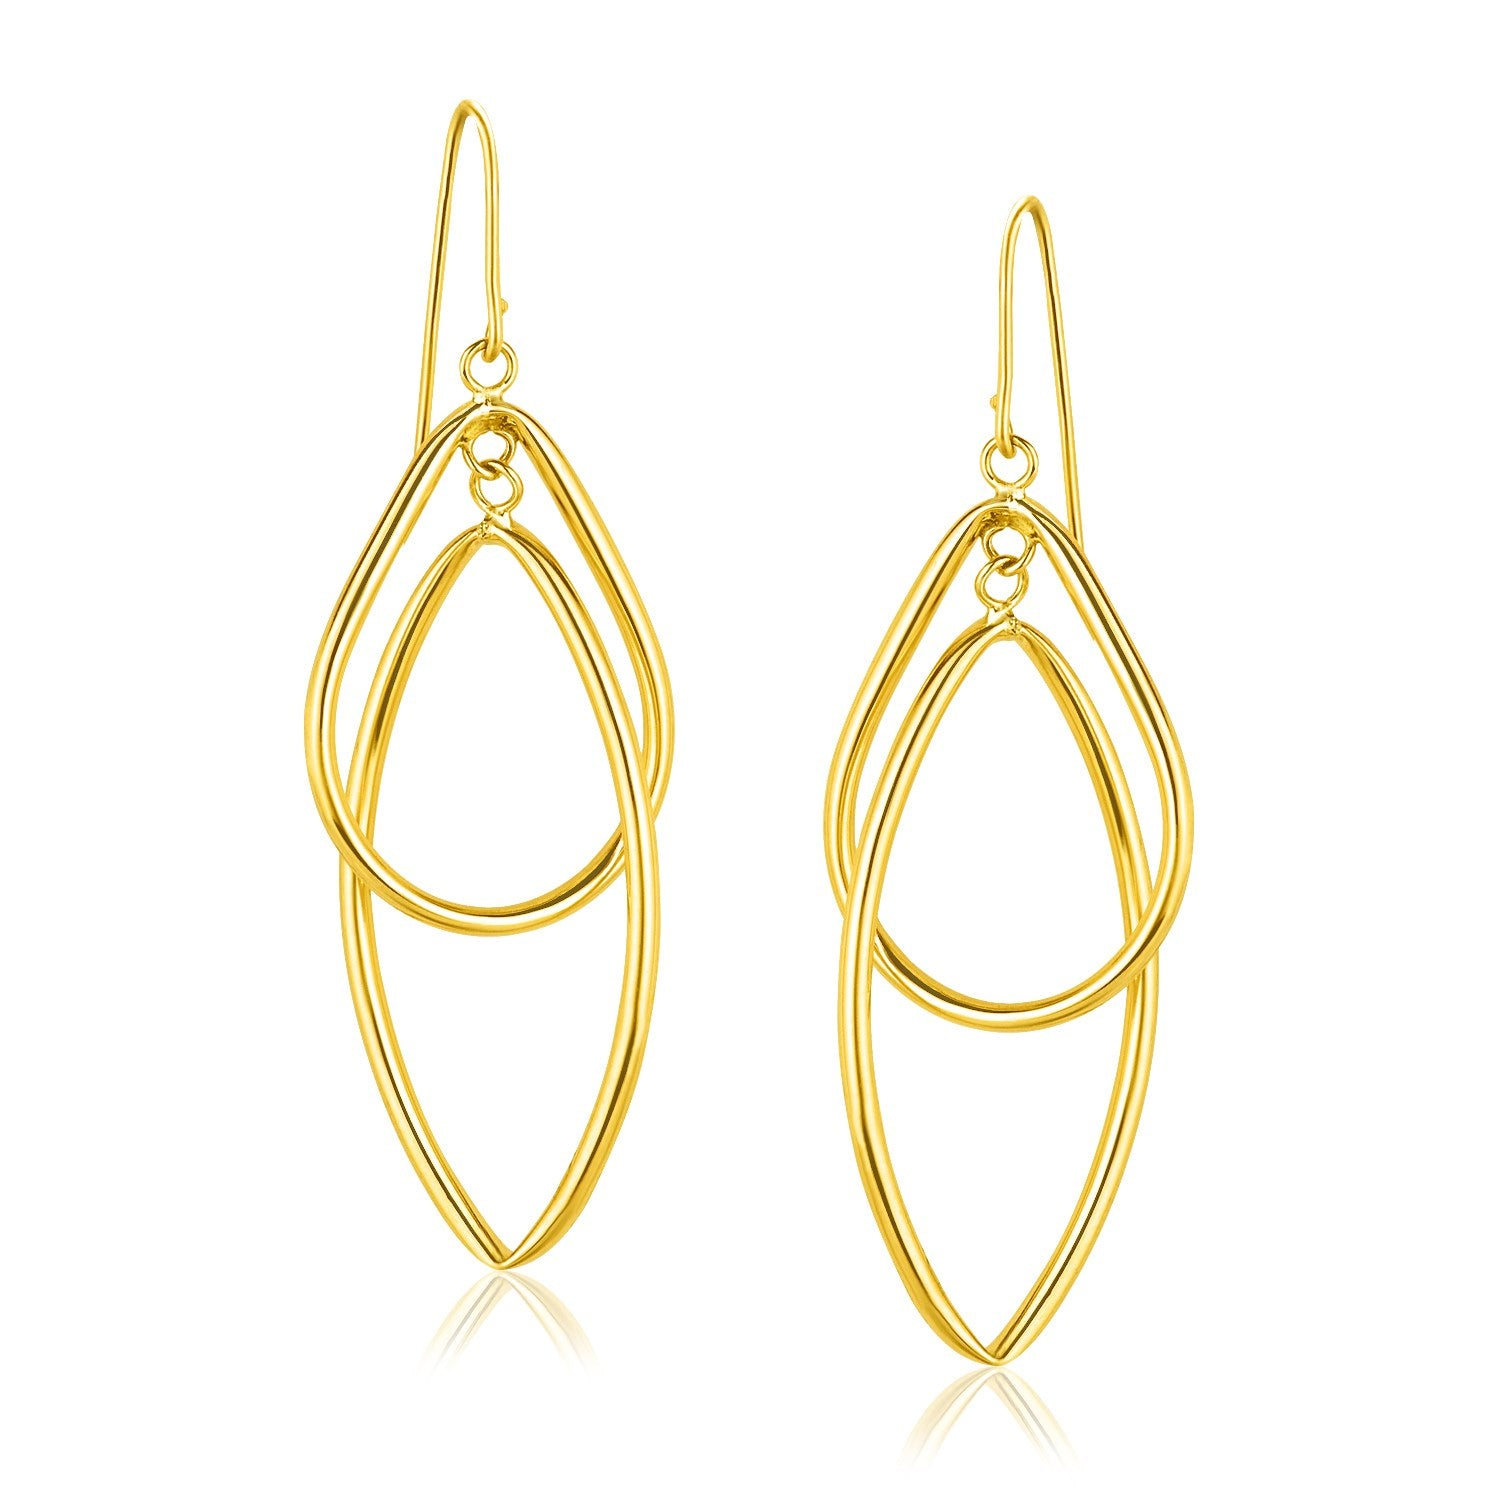 14K Yellow Gold Entwined Teardrop Double Row Earrings